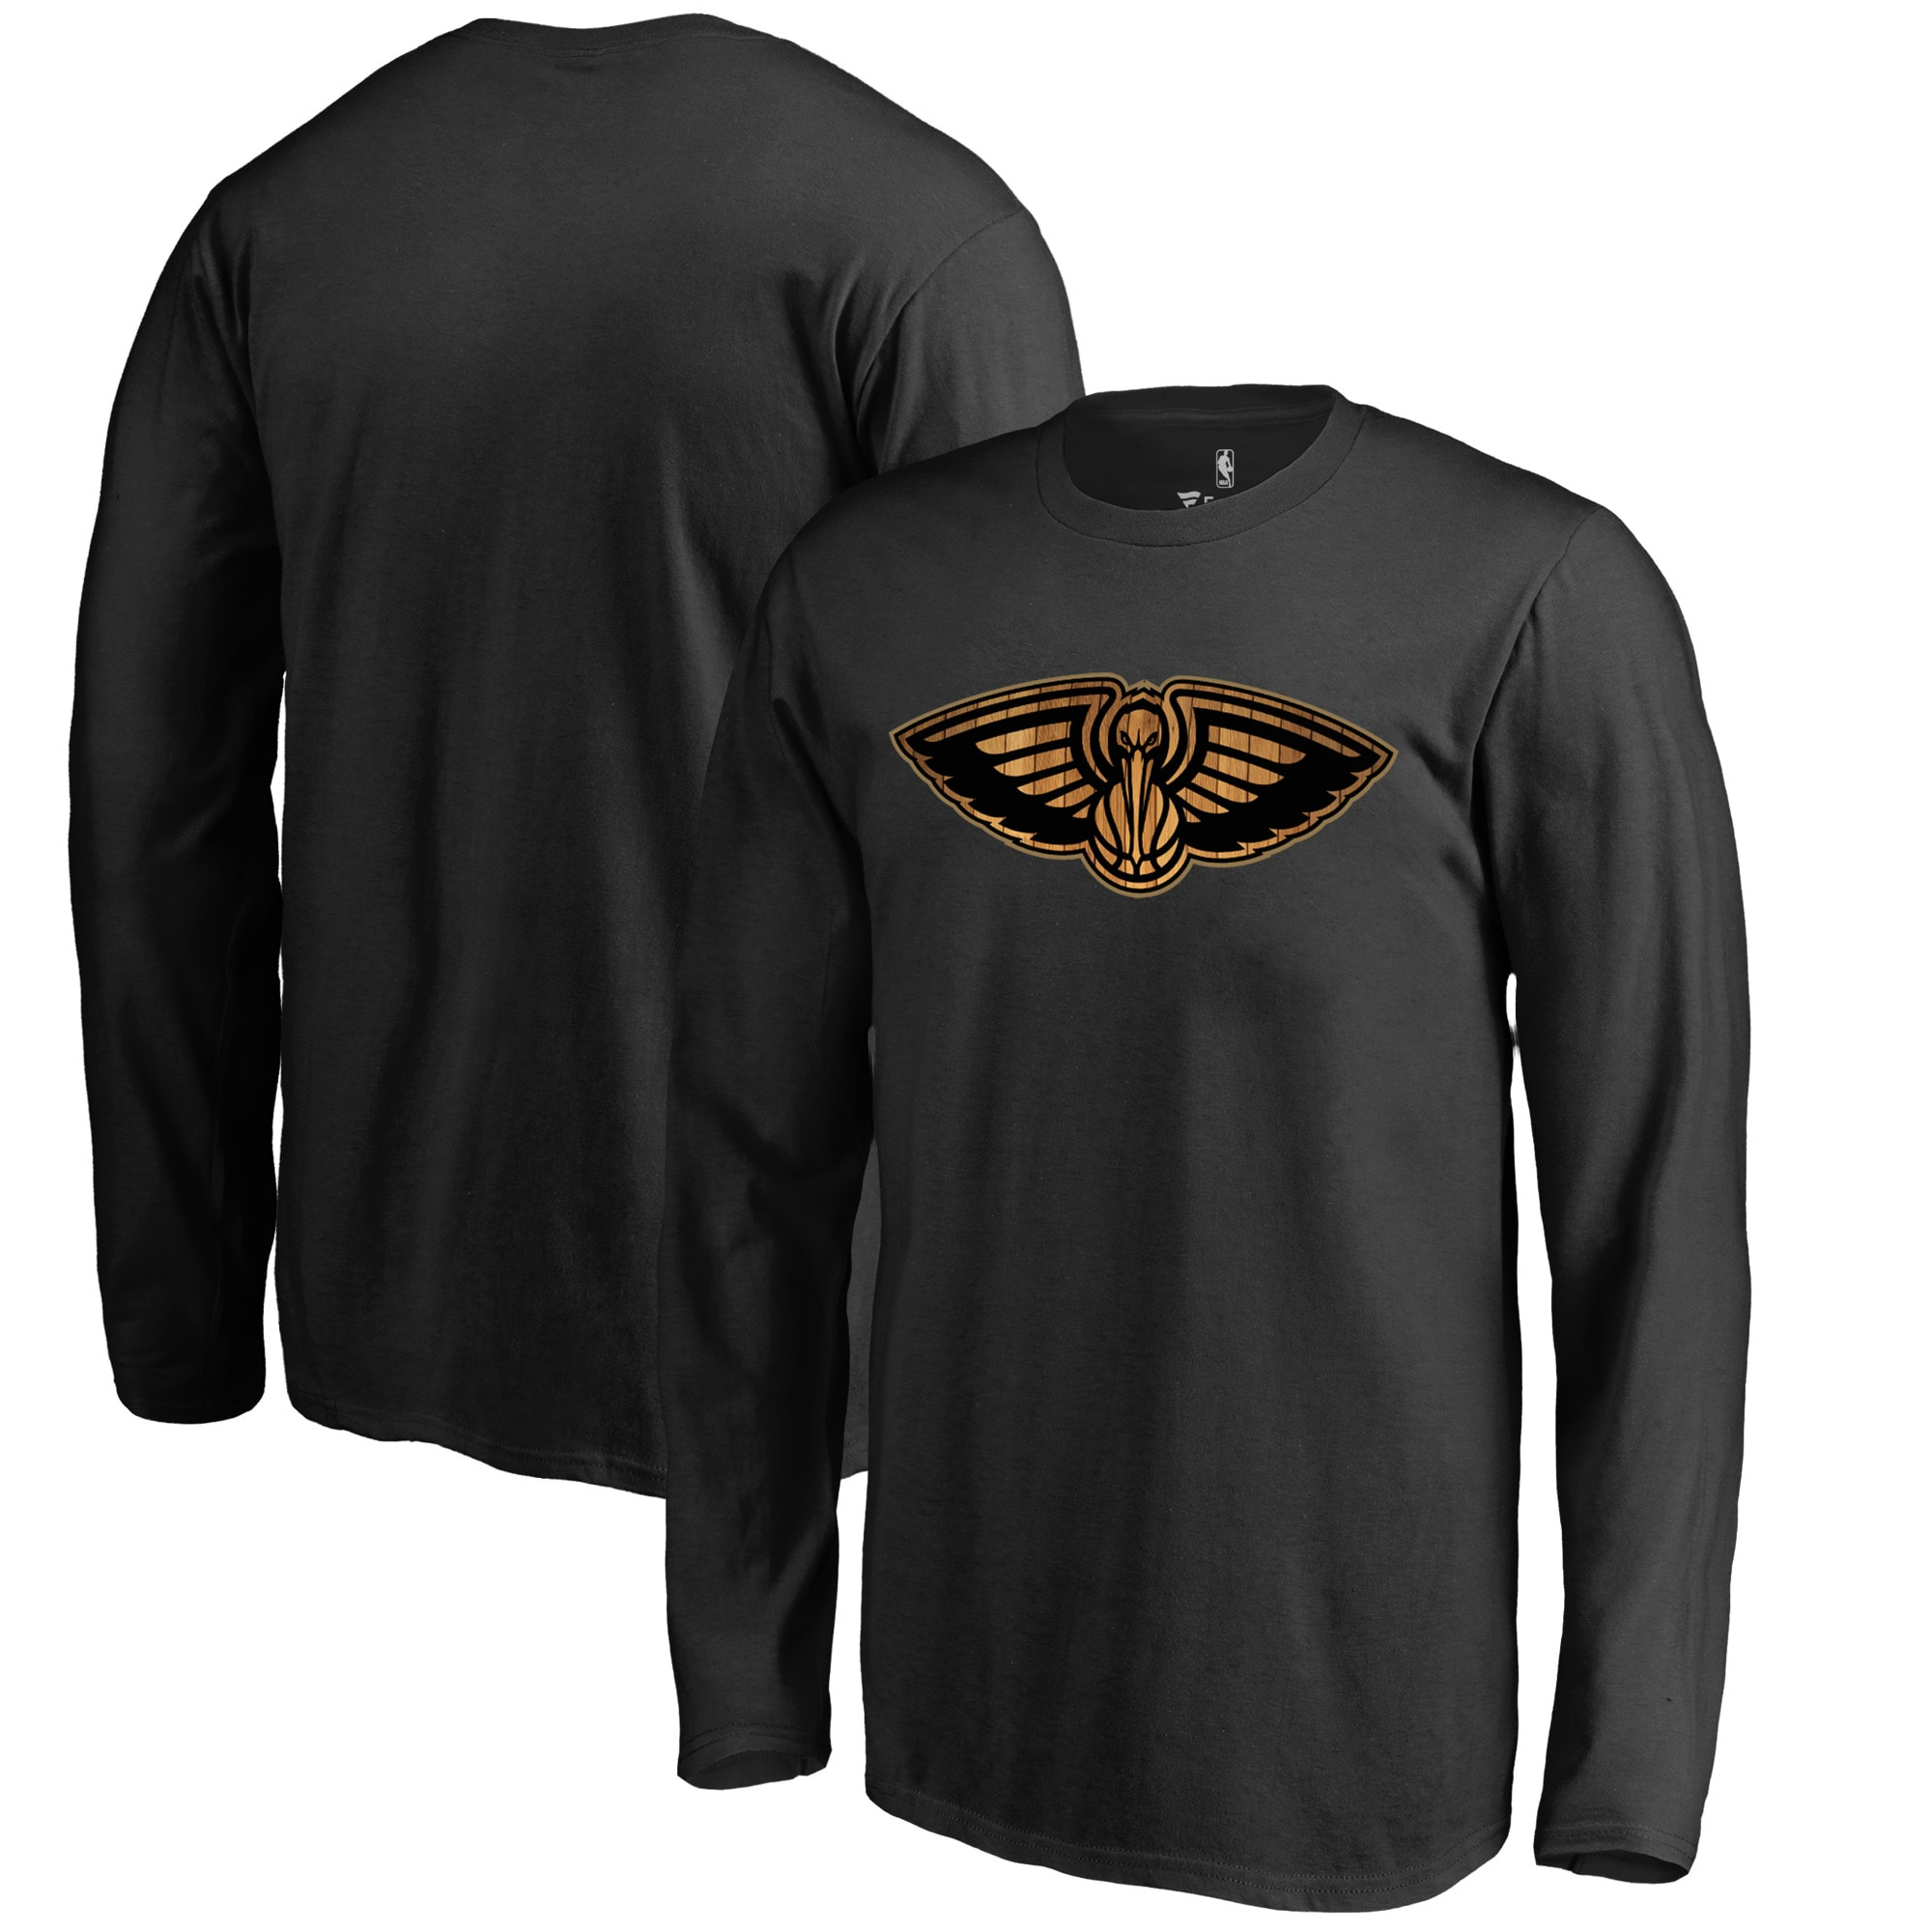 New Orleans Pelicans Fanatics Branded Youth Hardwood Long Sleeve T-Shirt - Black